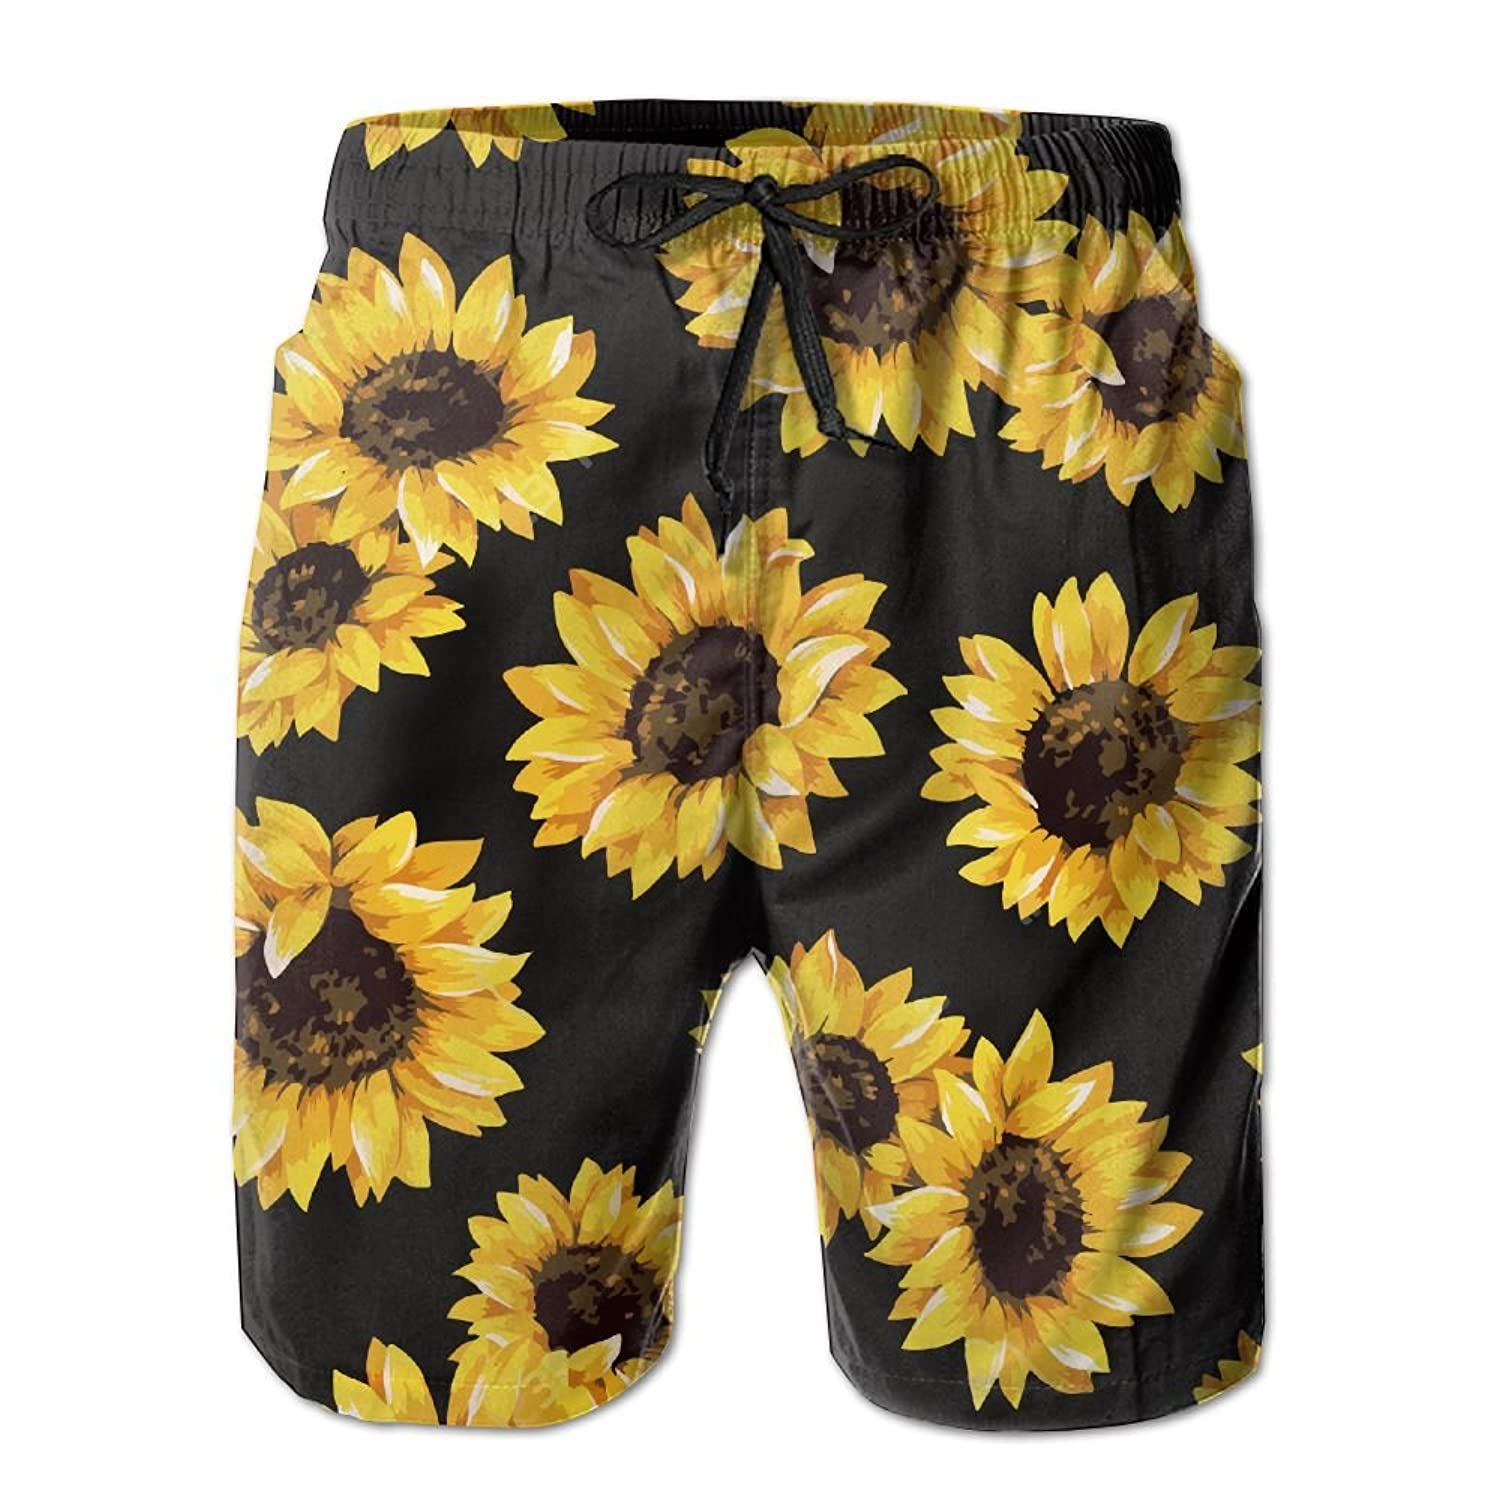 Mens Camouflage Texture Summer Beach Quick Dry Shorts Swimming Trunks Cargo Shorts Beach Trunks